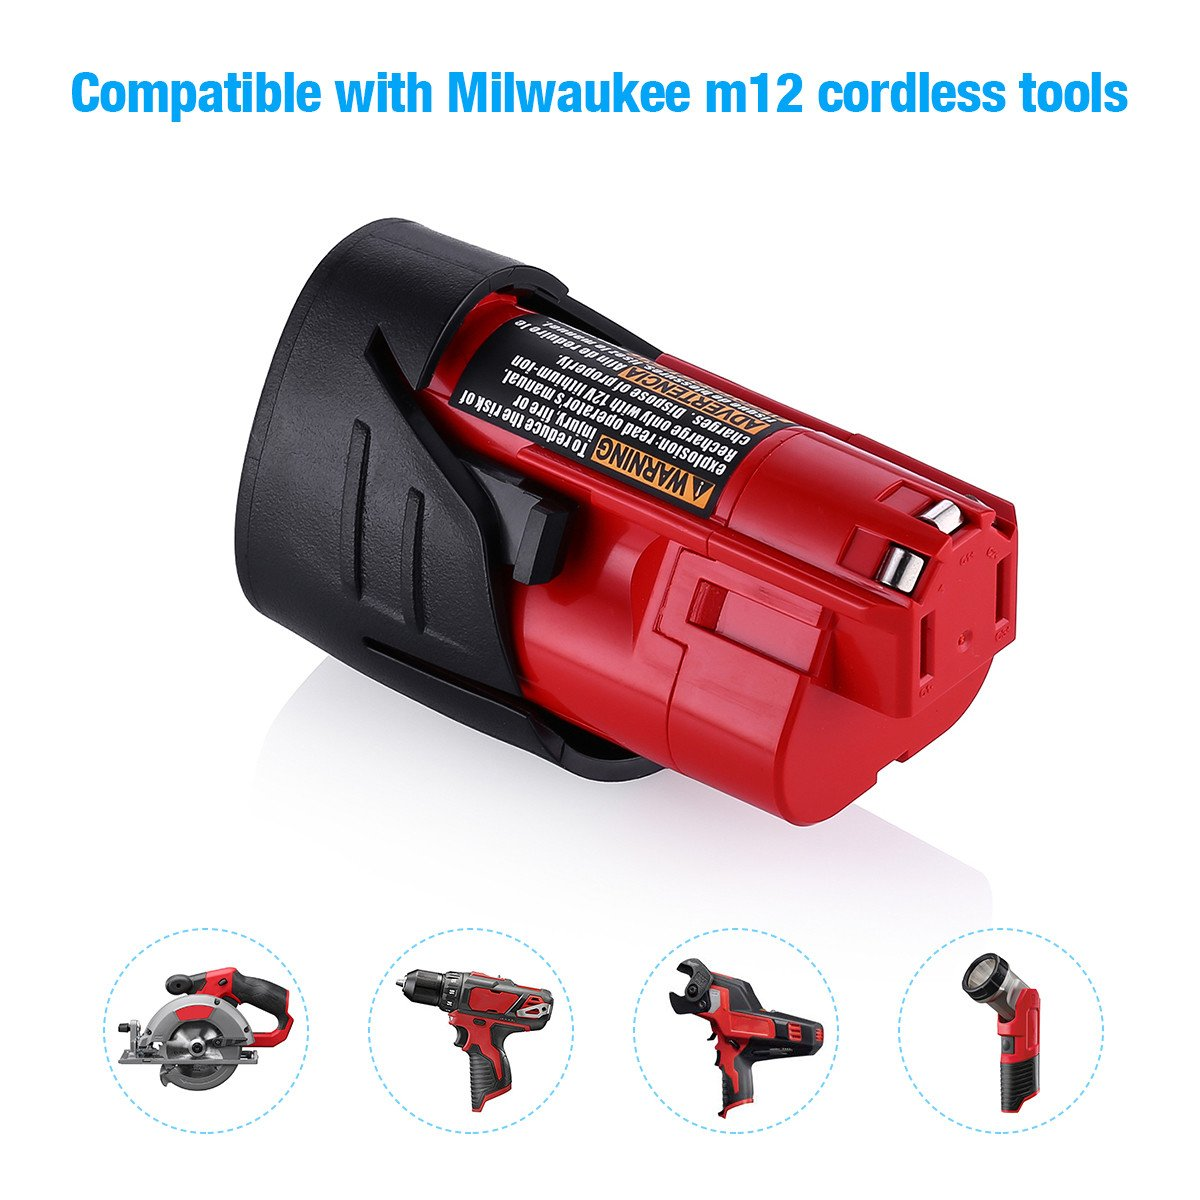 Powerextra 2 Pack 12V 2500mAh Lithium-ion Replacement Battery Compatible with Milwaukee M12 Milwaukee 48-11-2411 REDLITHIUM 12-Volt Cordless Milwaukee Tools Milwaukee 12V Battery Lithium-ion by Powerextra (Image #3)